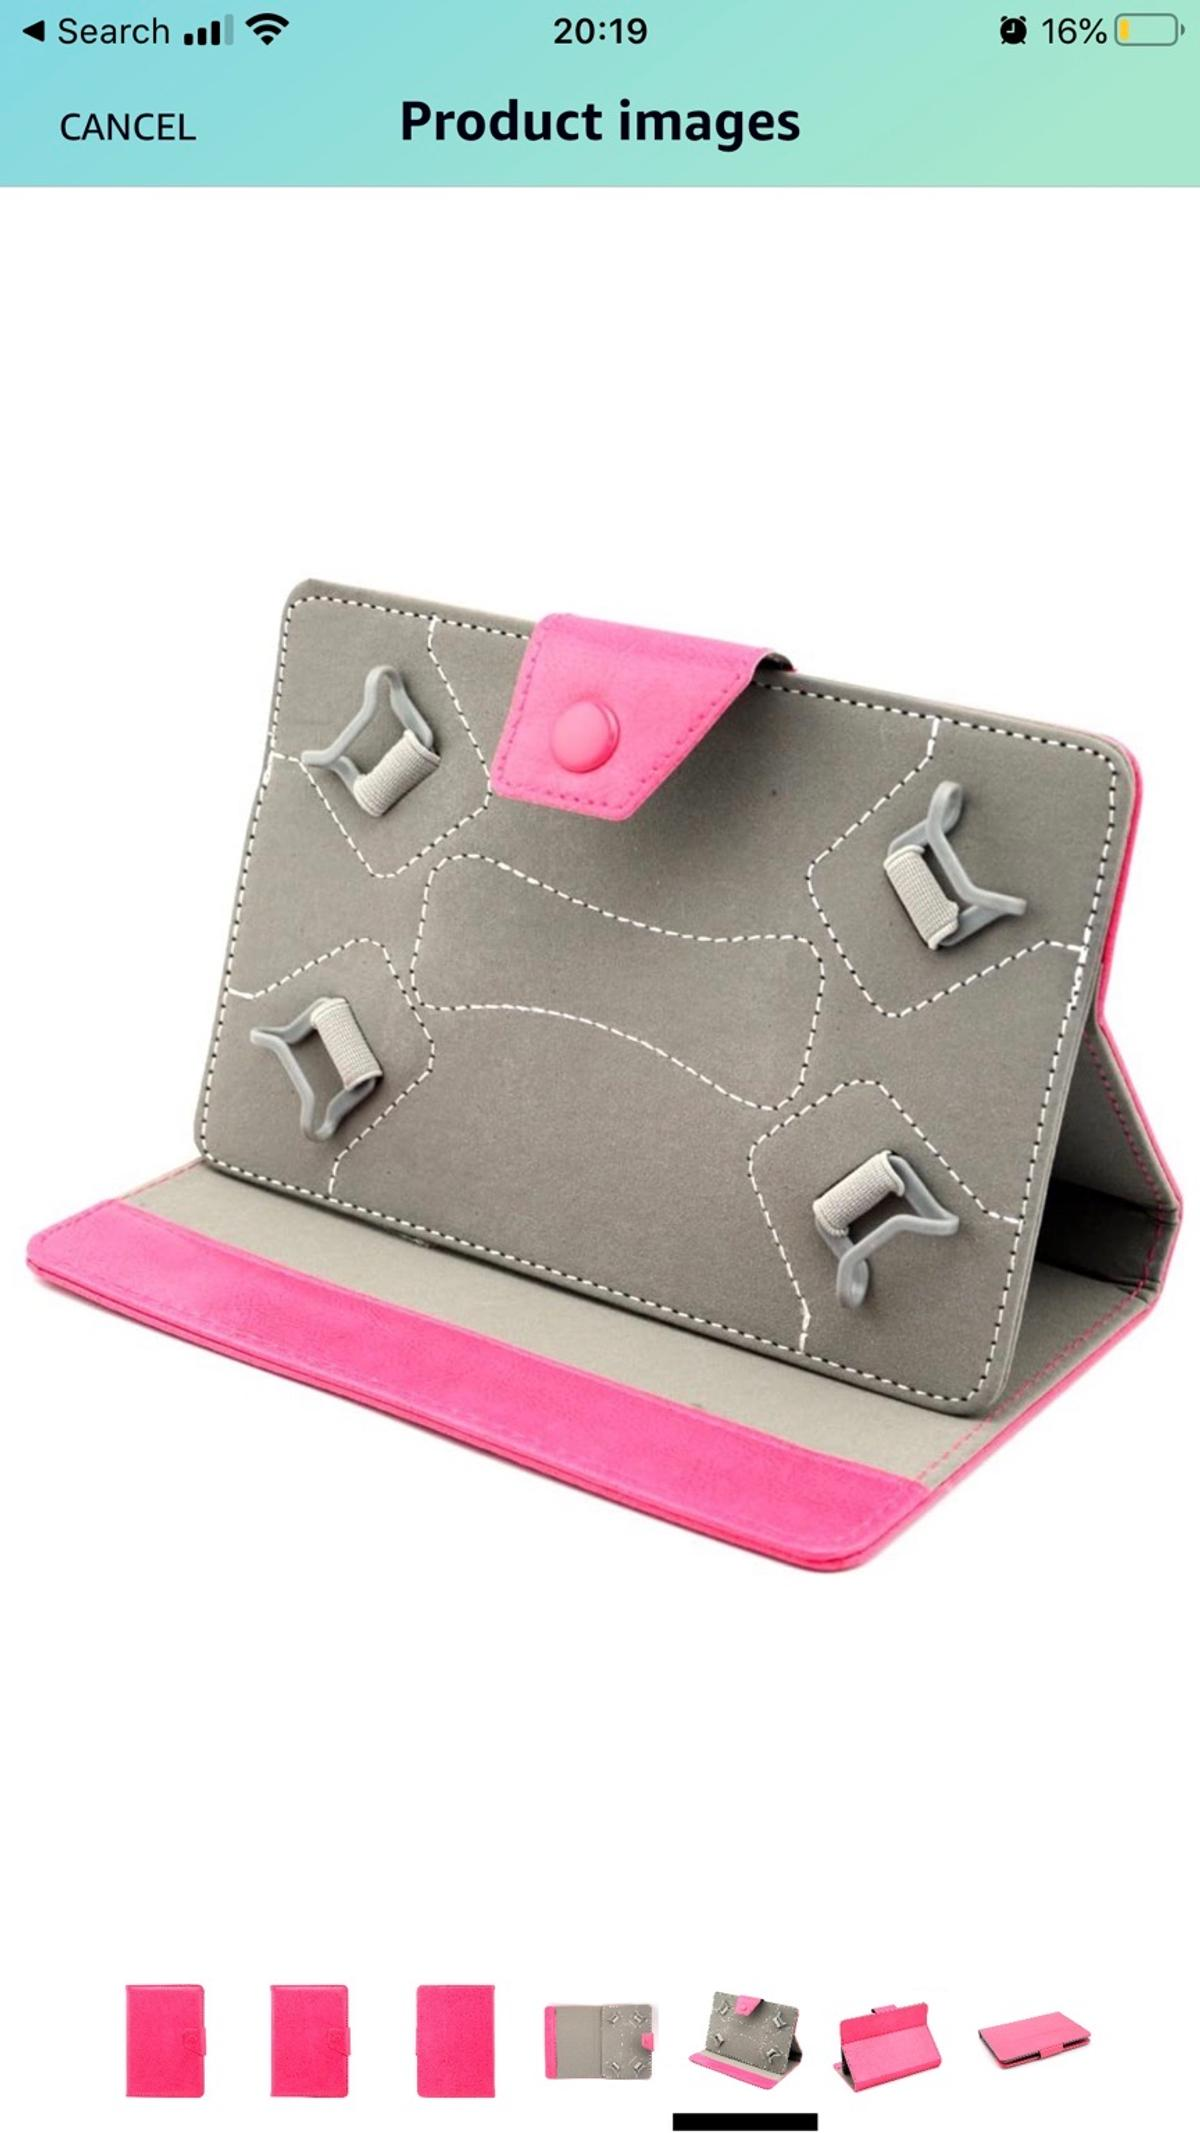 Made for use with any 7 and 8 inch Screen tablets such as Amazon kindle , Samsung, Google tablets. Uses 4 Curved Corner Grips to keep your Tablet firmly in place. Tablet case comes with a color crystal stylus pen. Never opened.